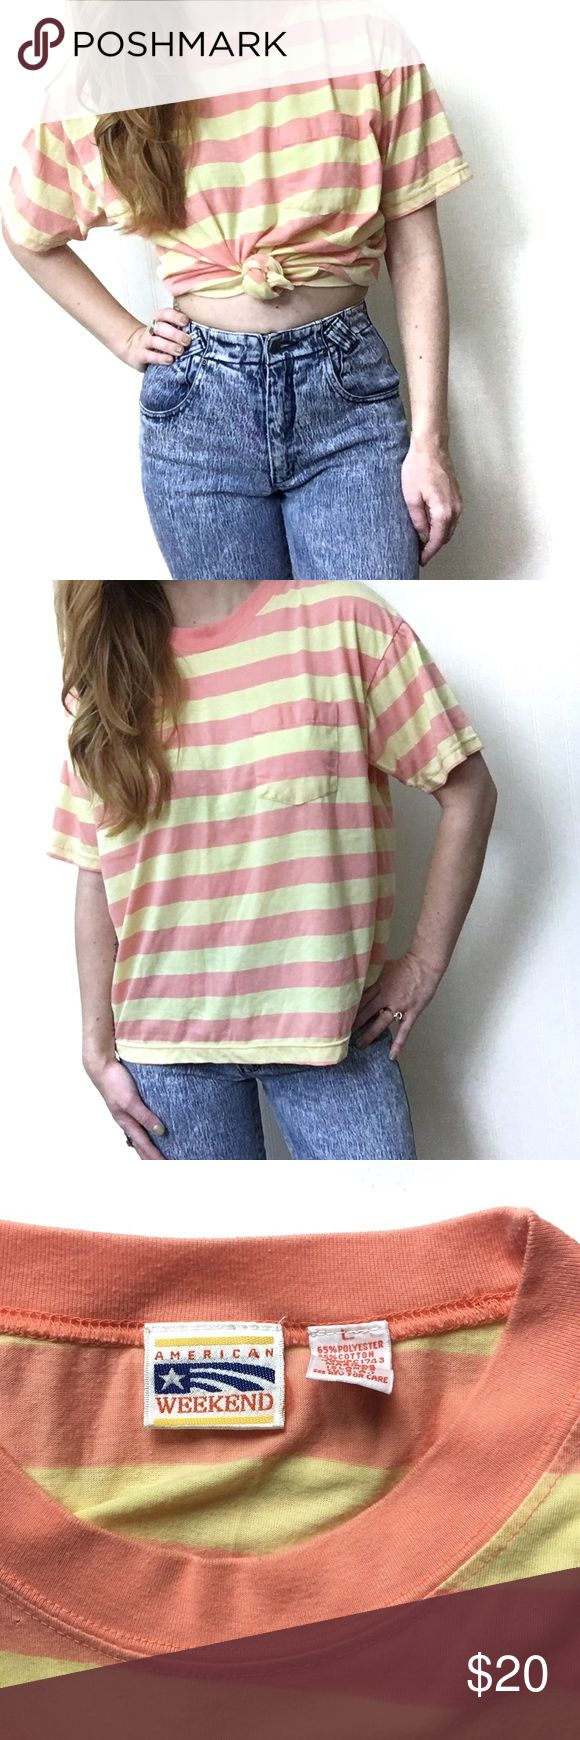 〰Vintage oversized striped tee This is a perfect boxy oversized melon & yellow striped tee in a size large, fits women's s-m, or snugger size large. Super cute worn as a tied crop or just slouchy. Tiny hole that can be seen in the 3rd photo right hand corner. The brand is American Weekend 🇺🇸 Vintage Tops Tees - Short Sleeve